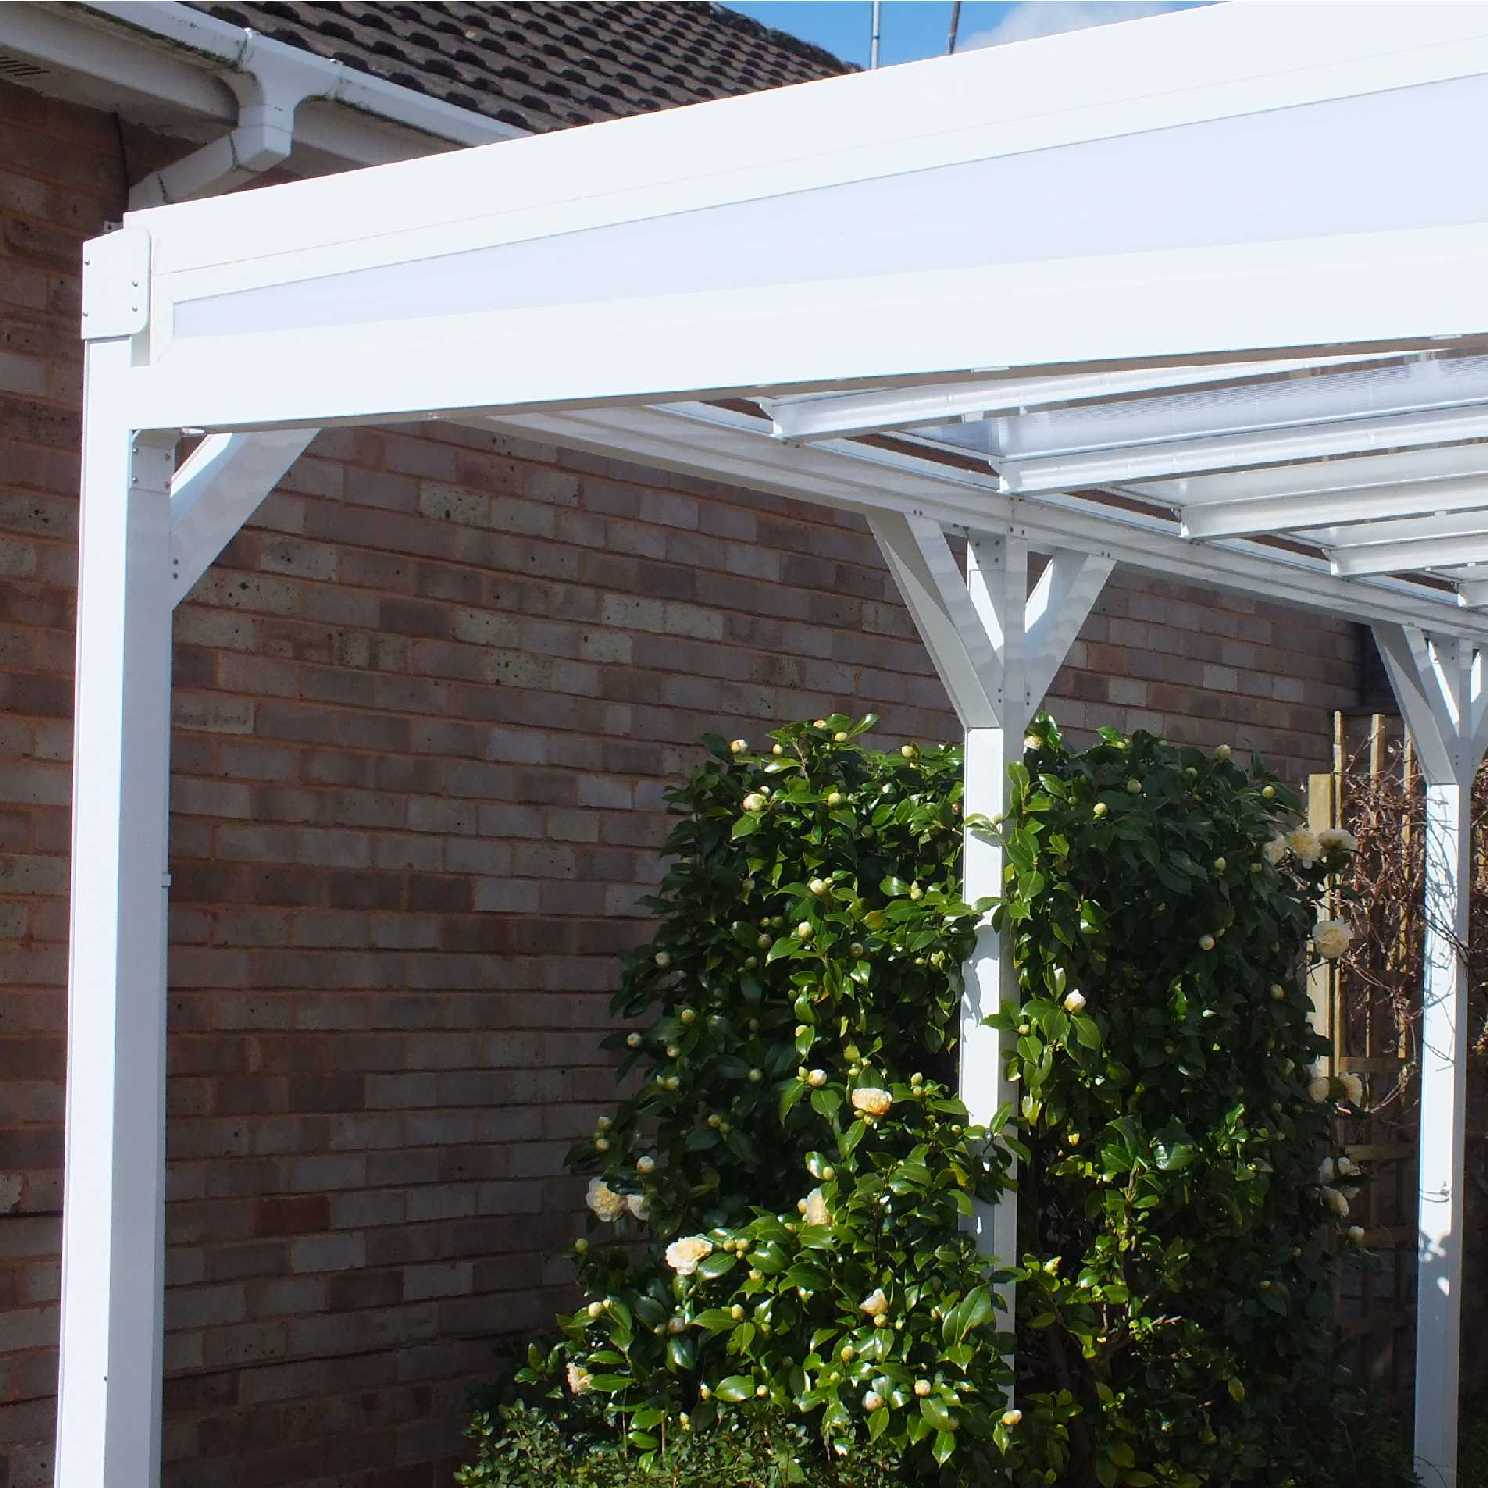 Omega Smart Lean-To Canopy with 16mm Polycarbonate Glazing - 10.6m (W) x 2.5m (P), (5) Supporting Posts from Omega Build